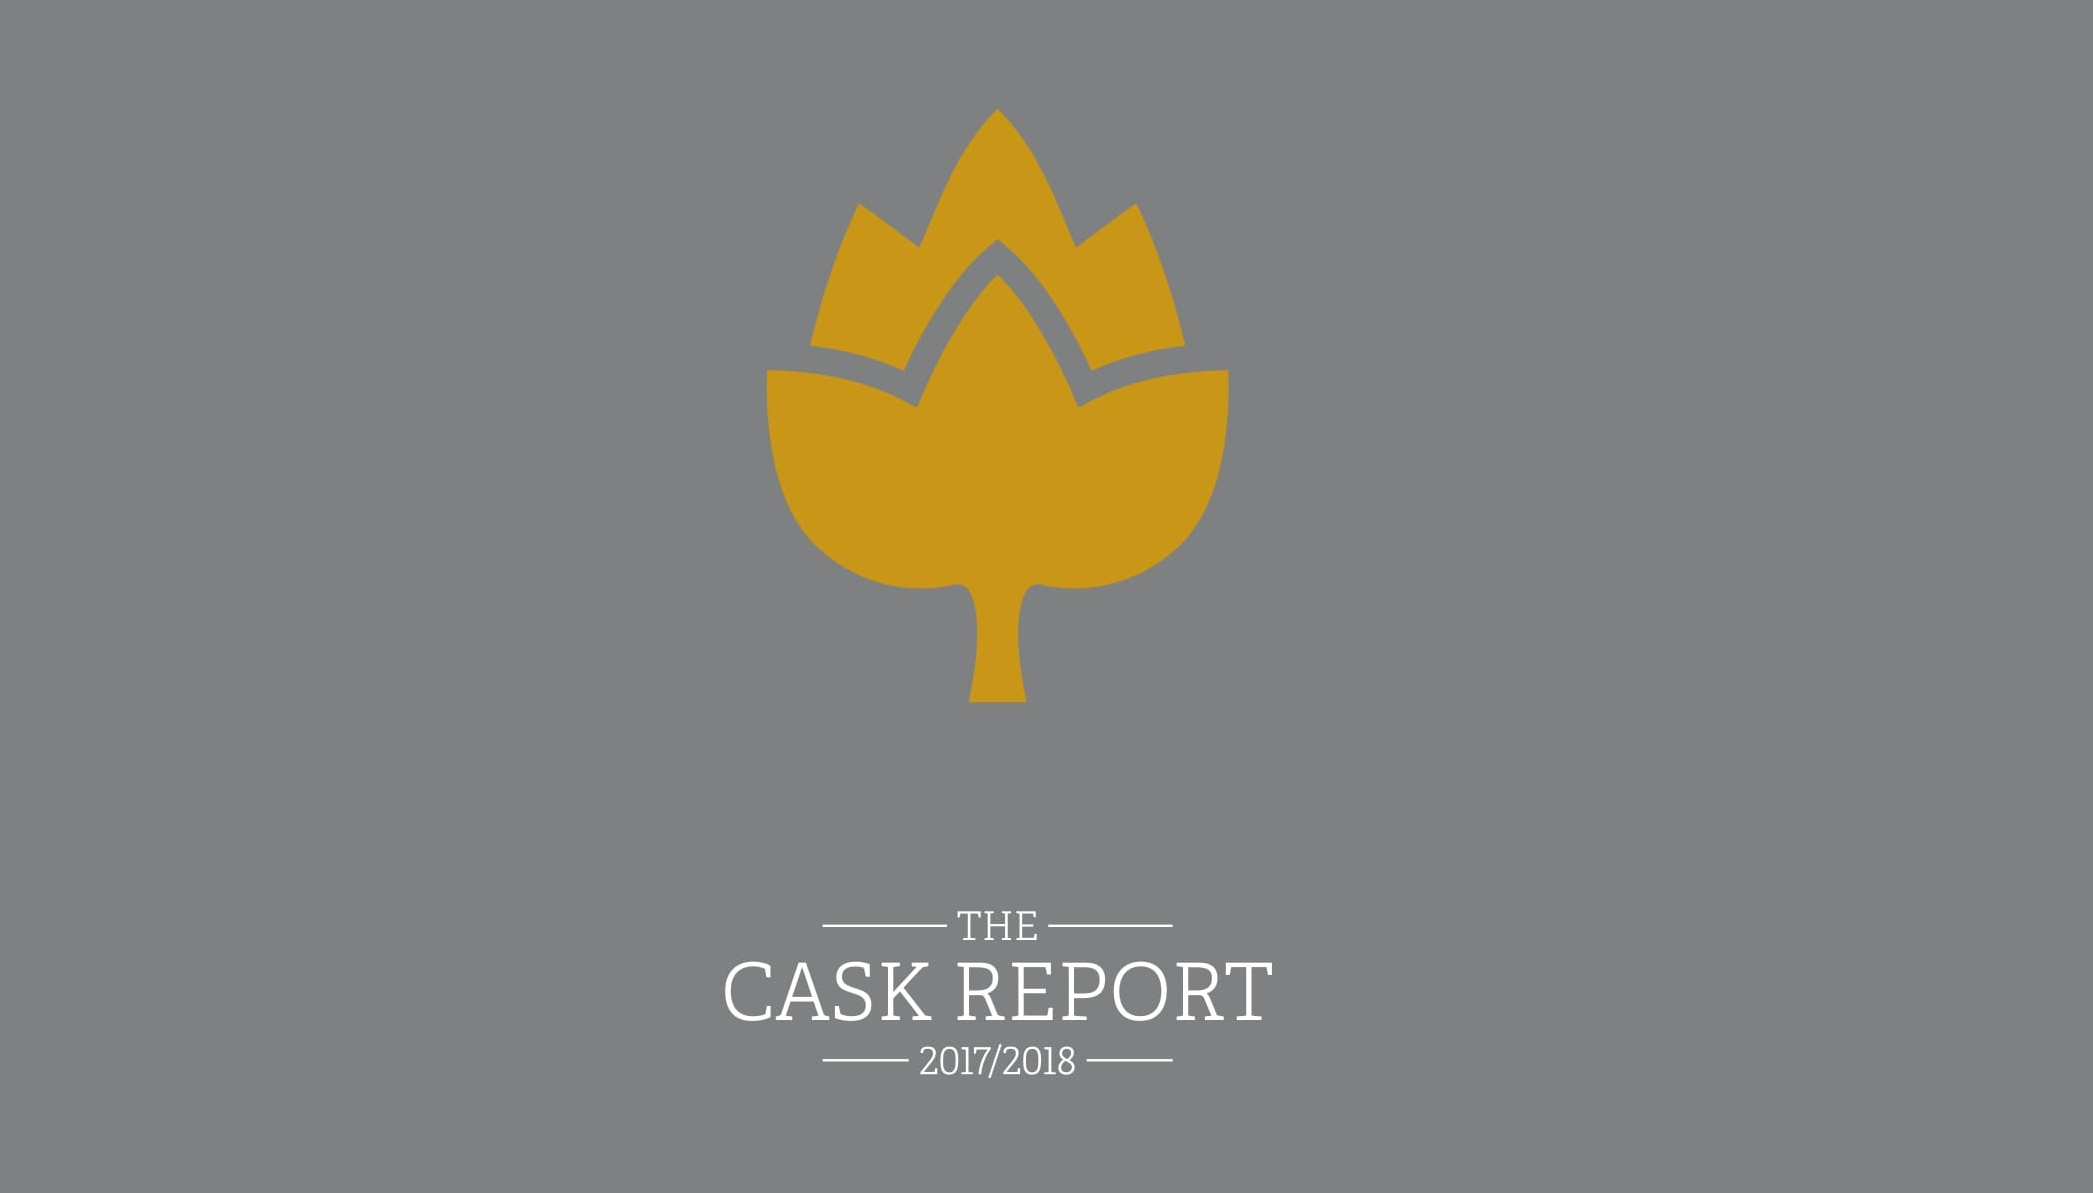 Cask Report 2017/2017 Launches